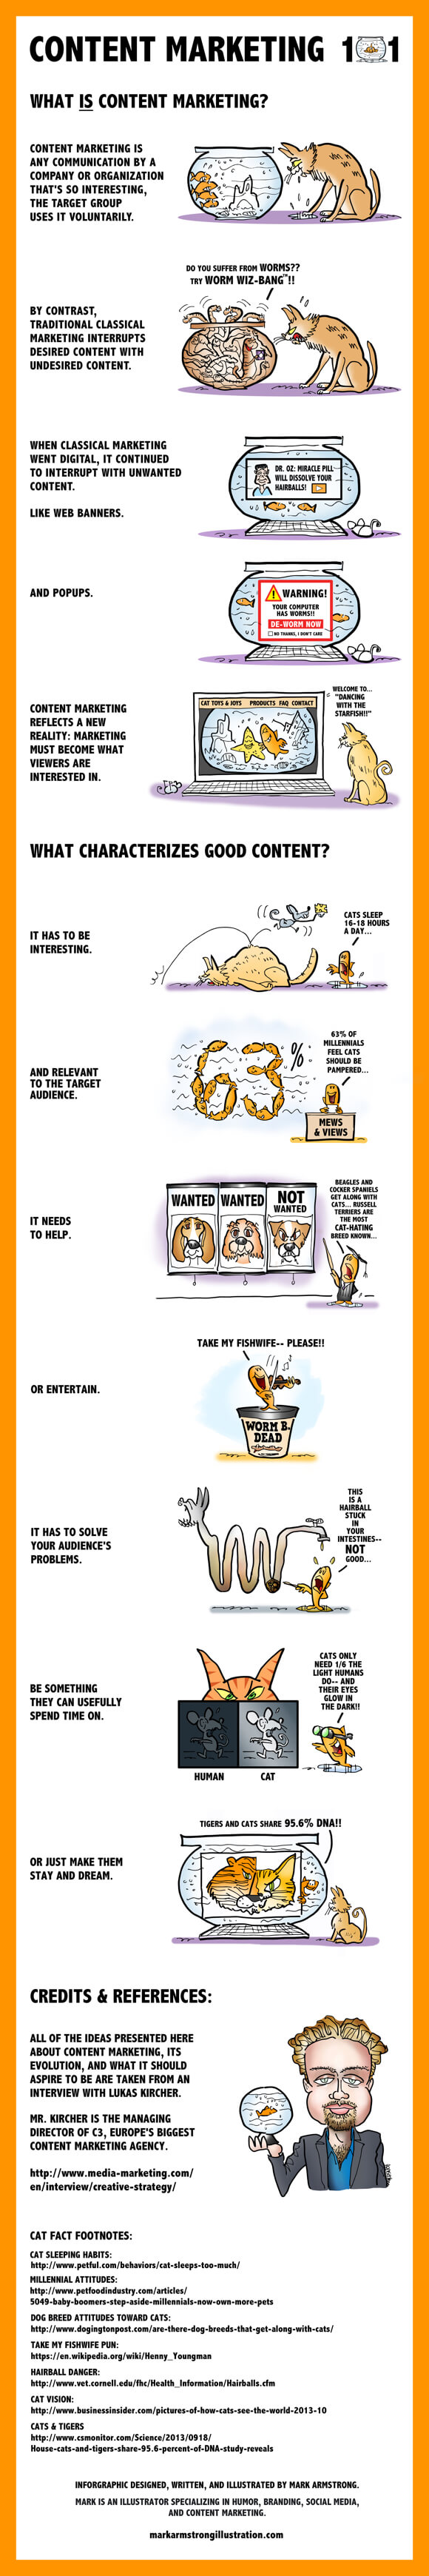 content marketing 101 explained with kittens